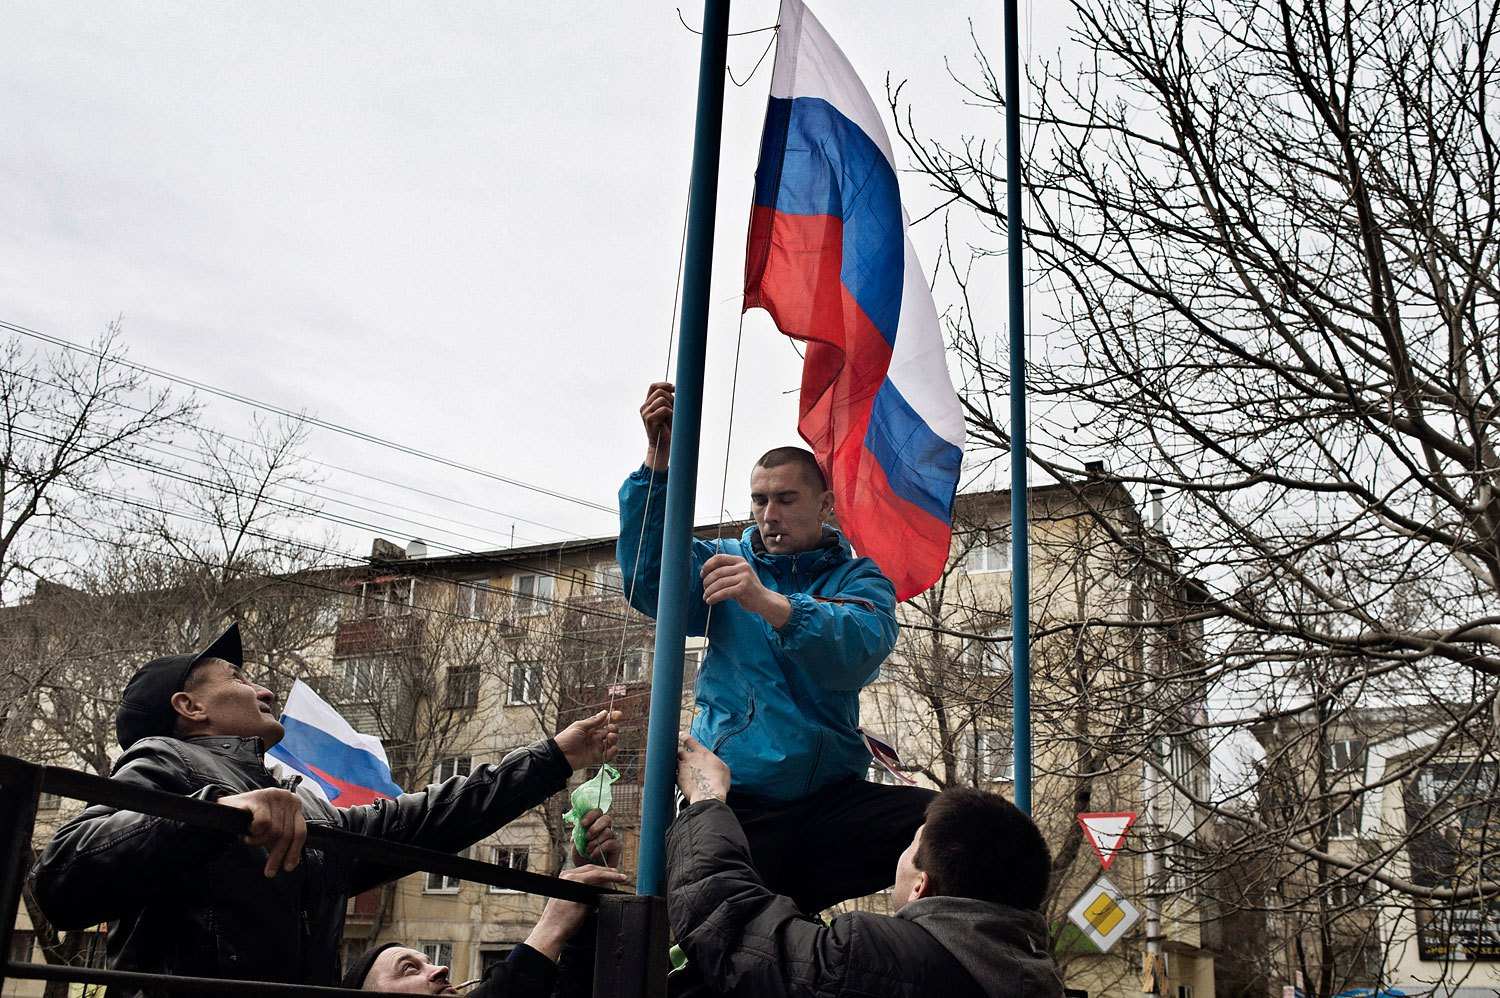 Members of a pro- Russian group raise a Russian flag in front of a military base in Simferopol on Sunday.